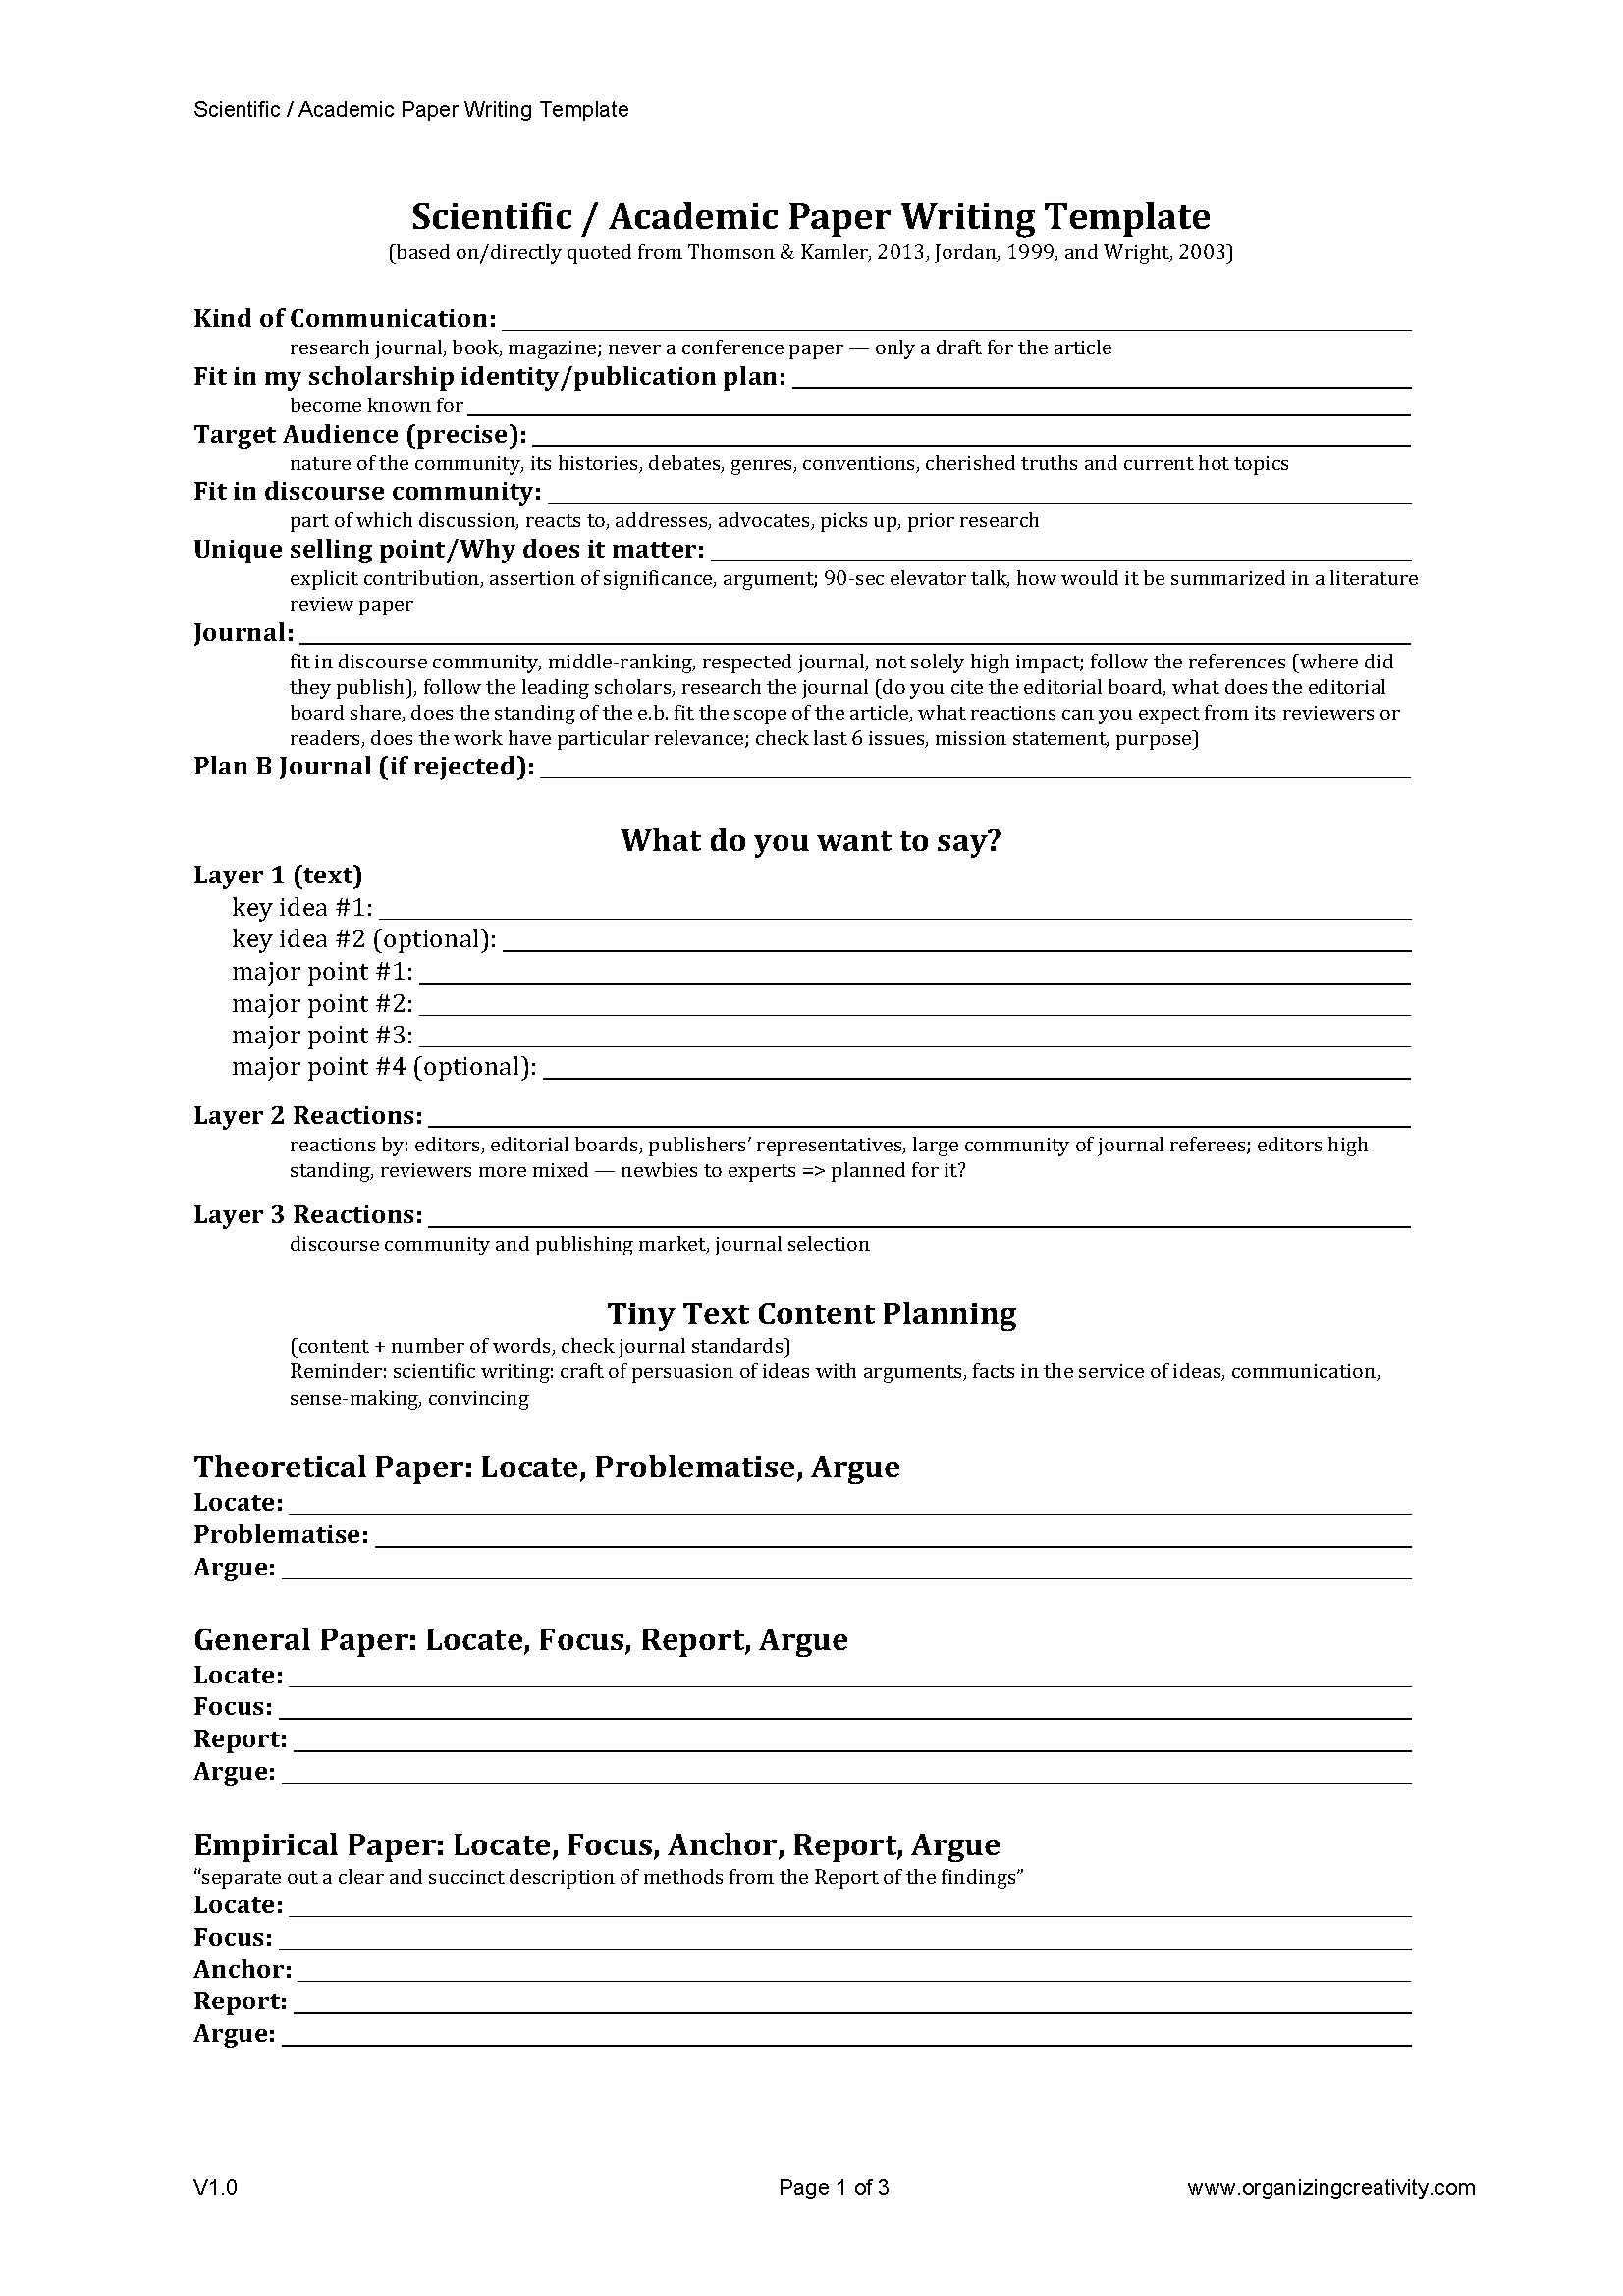 Scientific / Academic Paper Writing Template | ORGANIZING CREATIVITY